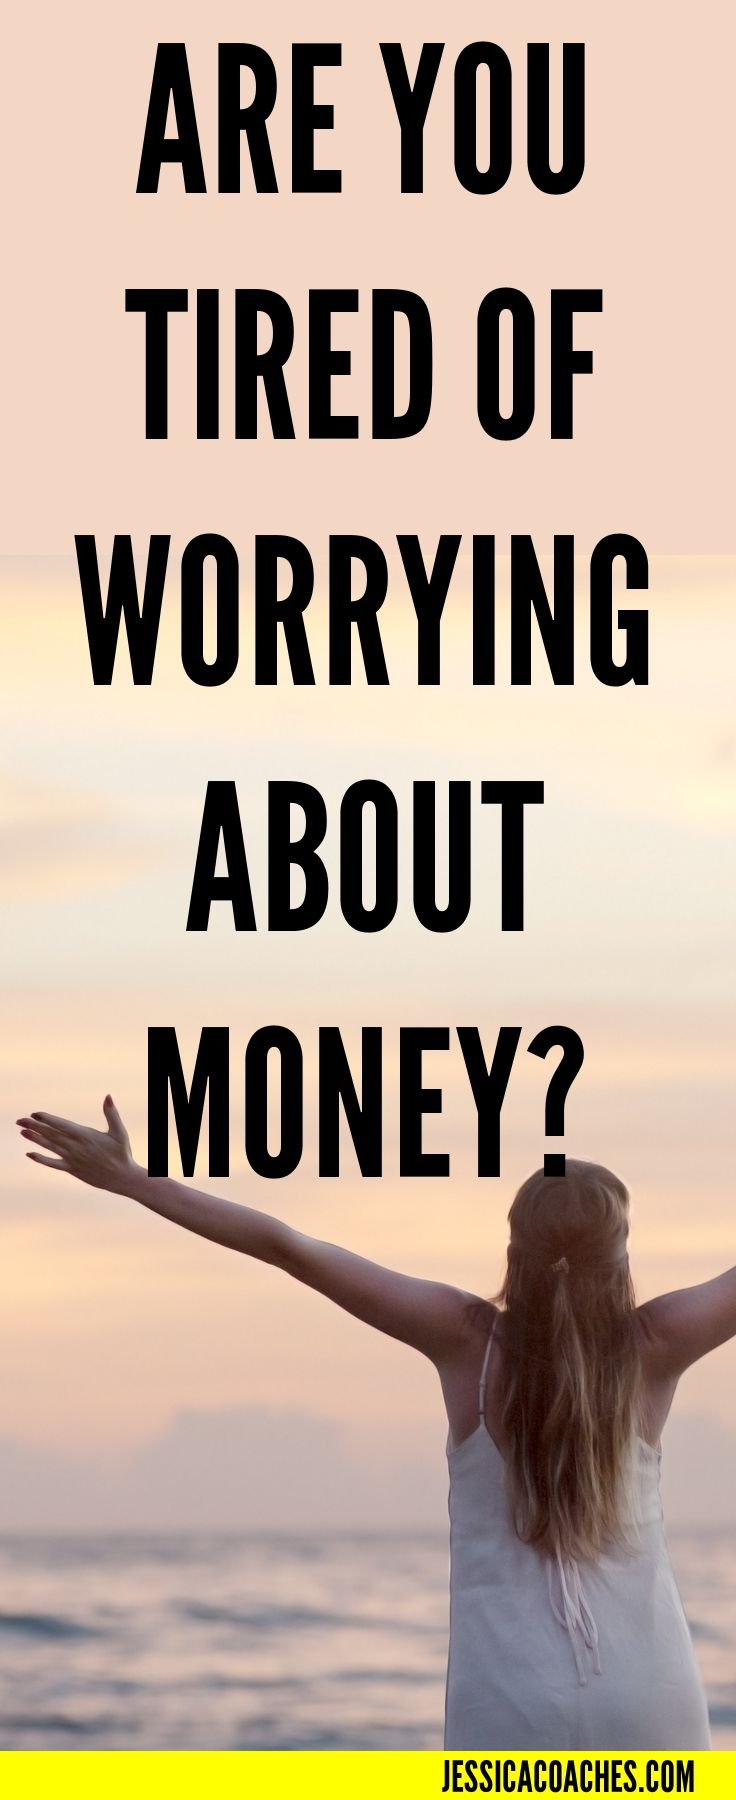 Tired of Worrying About Money, early retirement, passive, income, cash, fiancial, freedom, fiances, flow, help, 50%, paycheck to paycheck, broke, ready, for, change, 401k, investment http://jessicacoaches.com/2017/04/are-you-tired-of-worrying-about-money